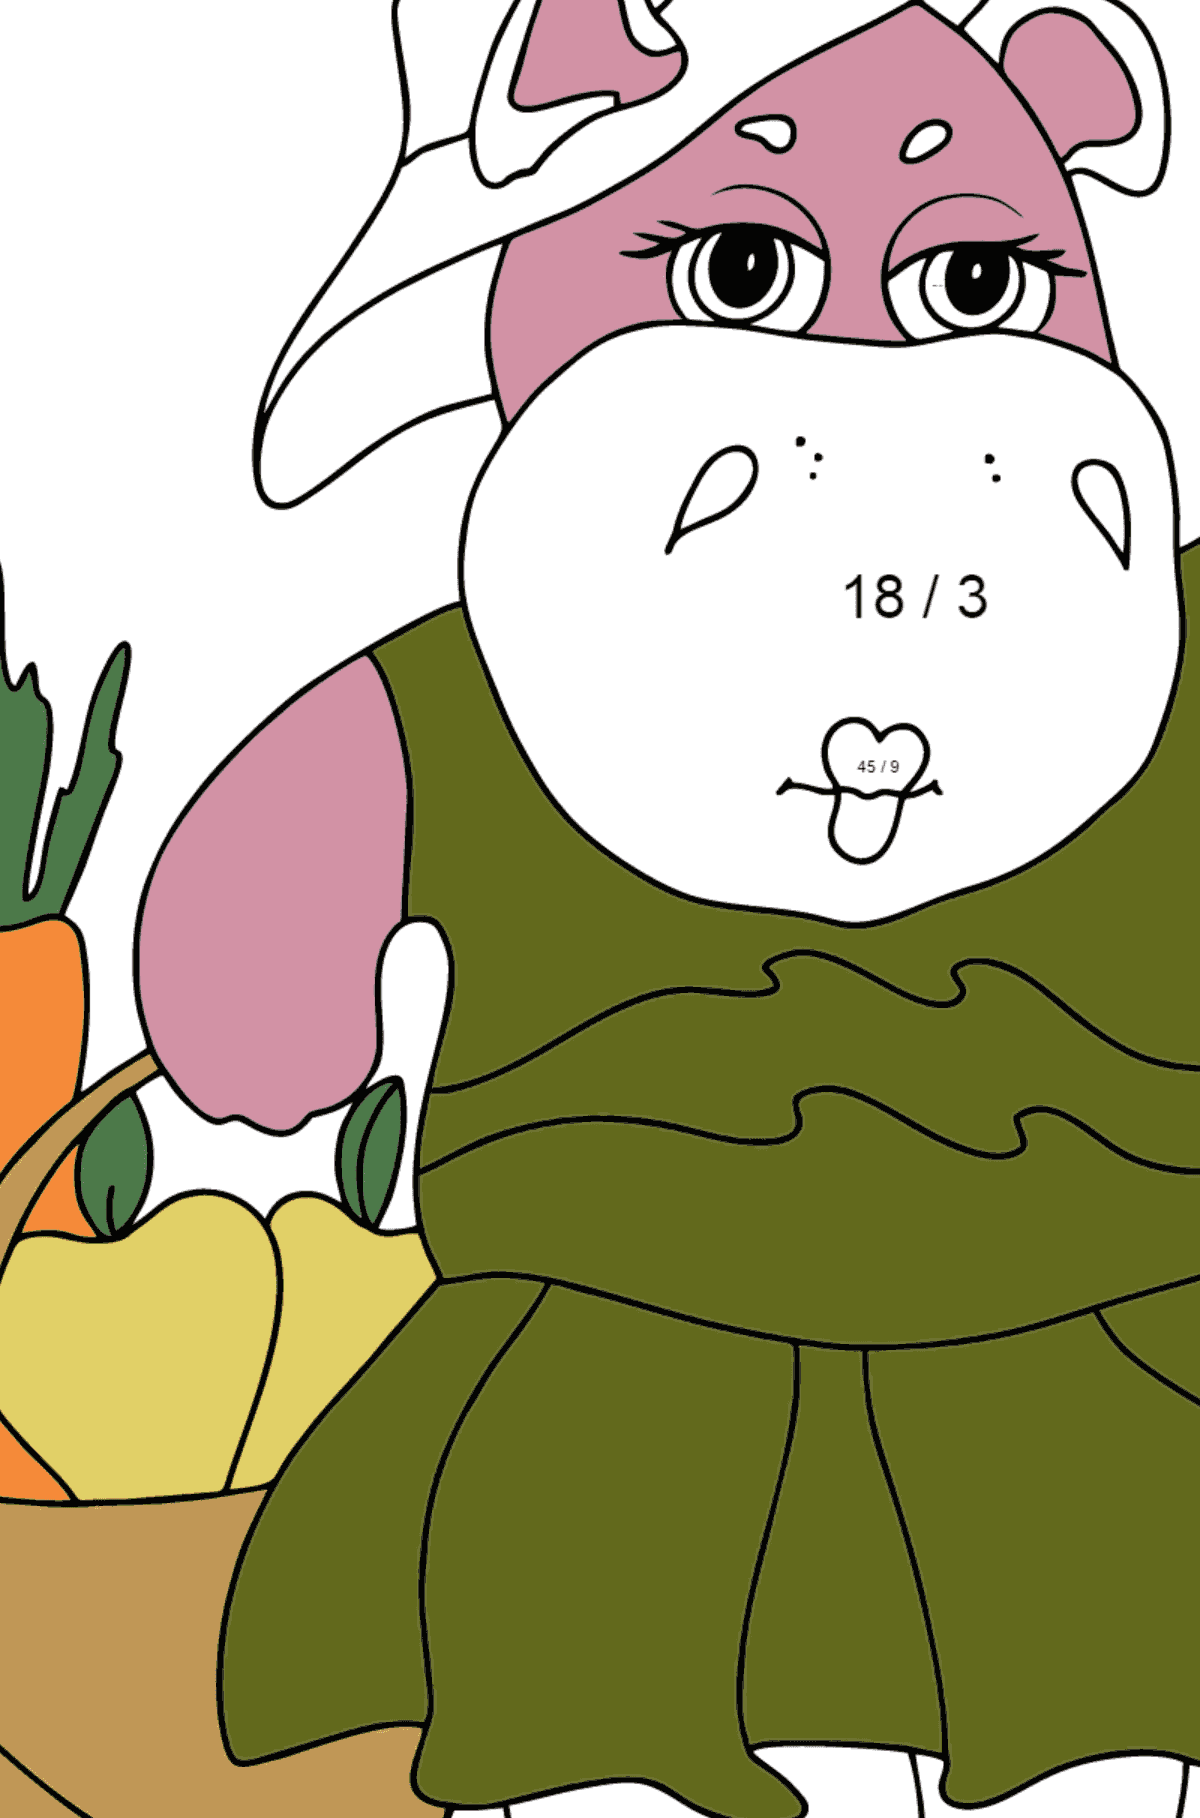 Coloring Page - A Hippo with a Basket of Carrots and Apples - Check it Out for Children  - Color by Number Division